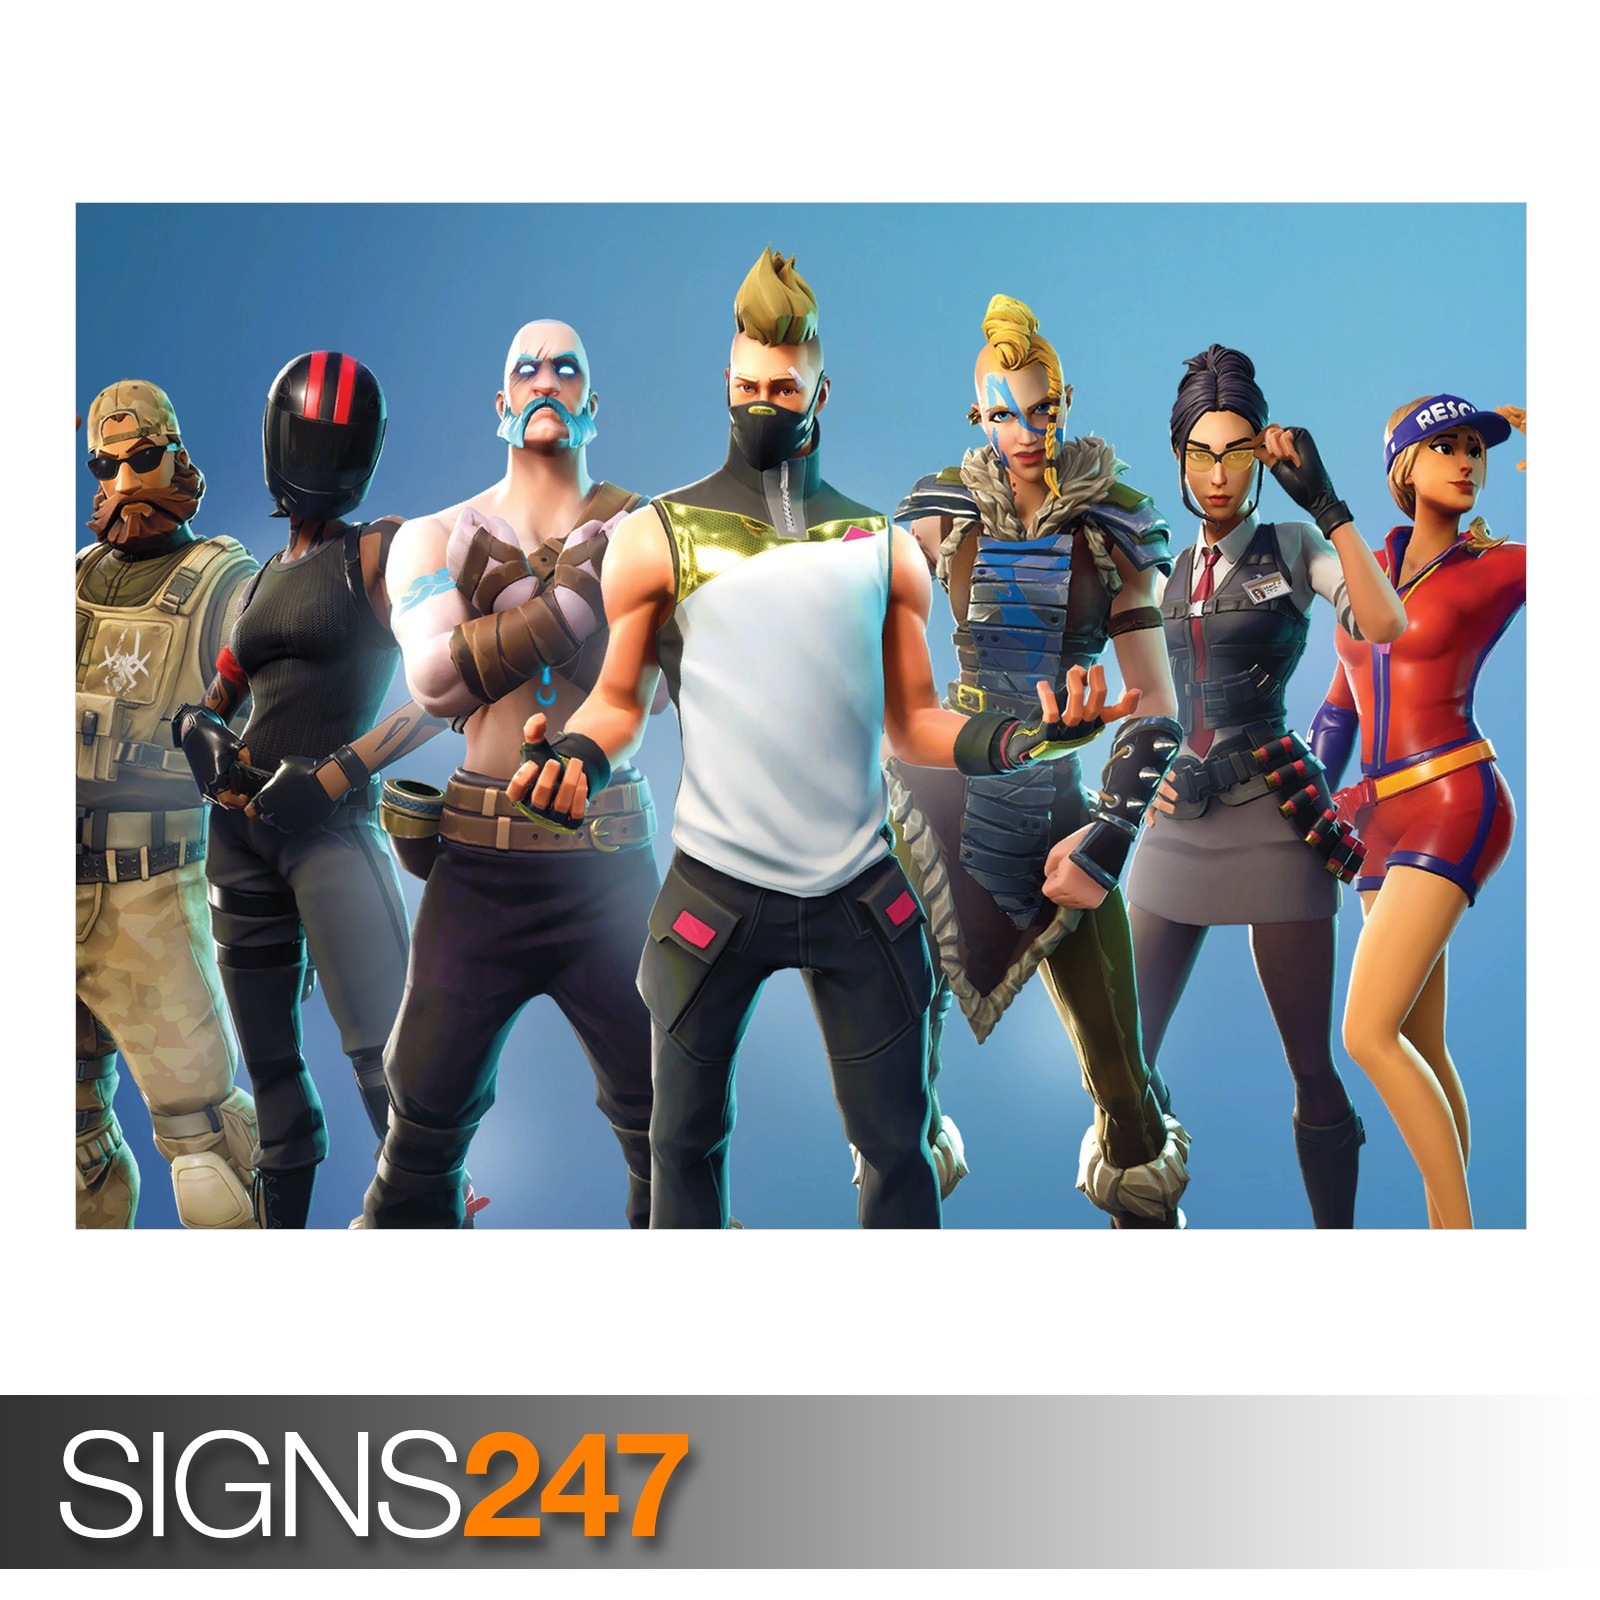 FORTNITE-SEASON-5-ZZ033-GAME-POSTER-Photo-Poster-Print-Art-A0-A1-A2-A3-A4